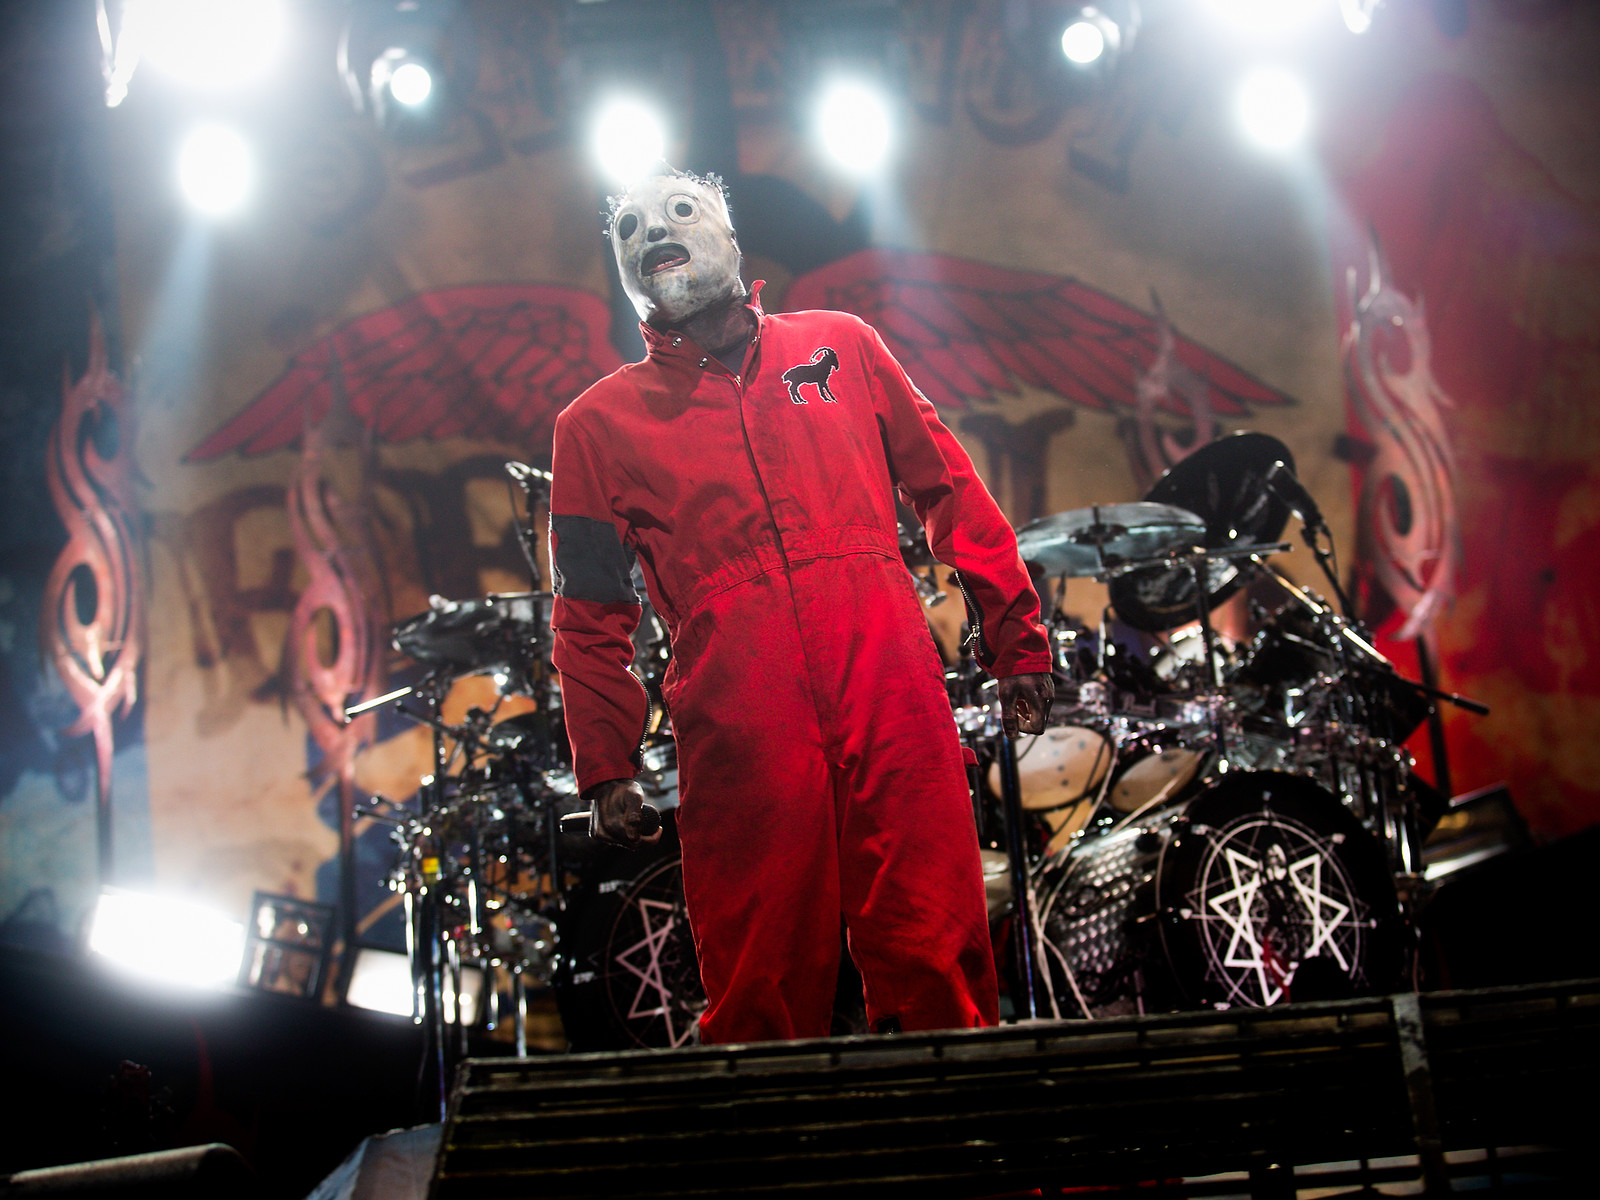 Slipknot @ Heavy TO 2012